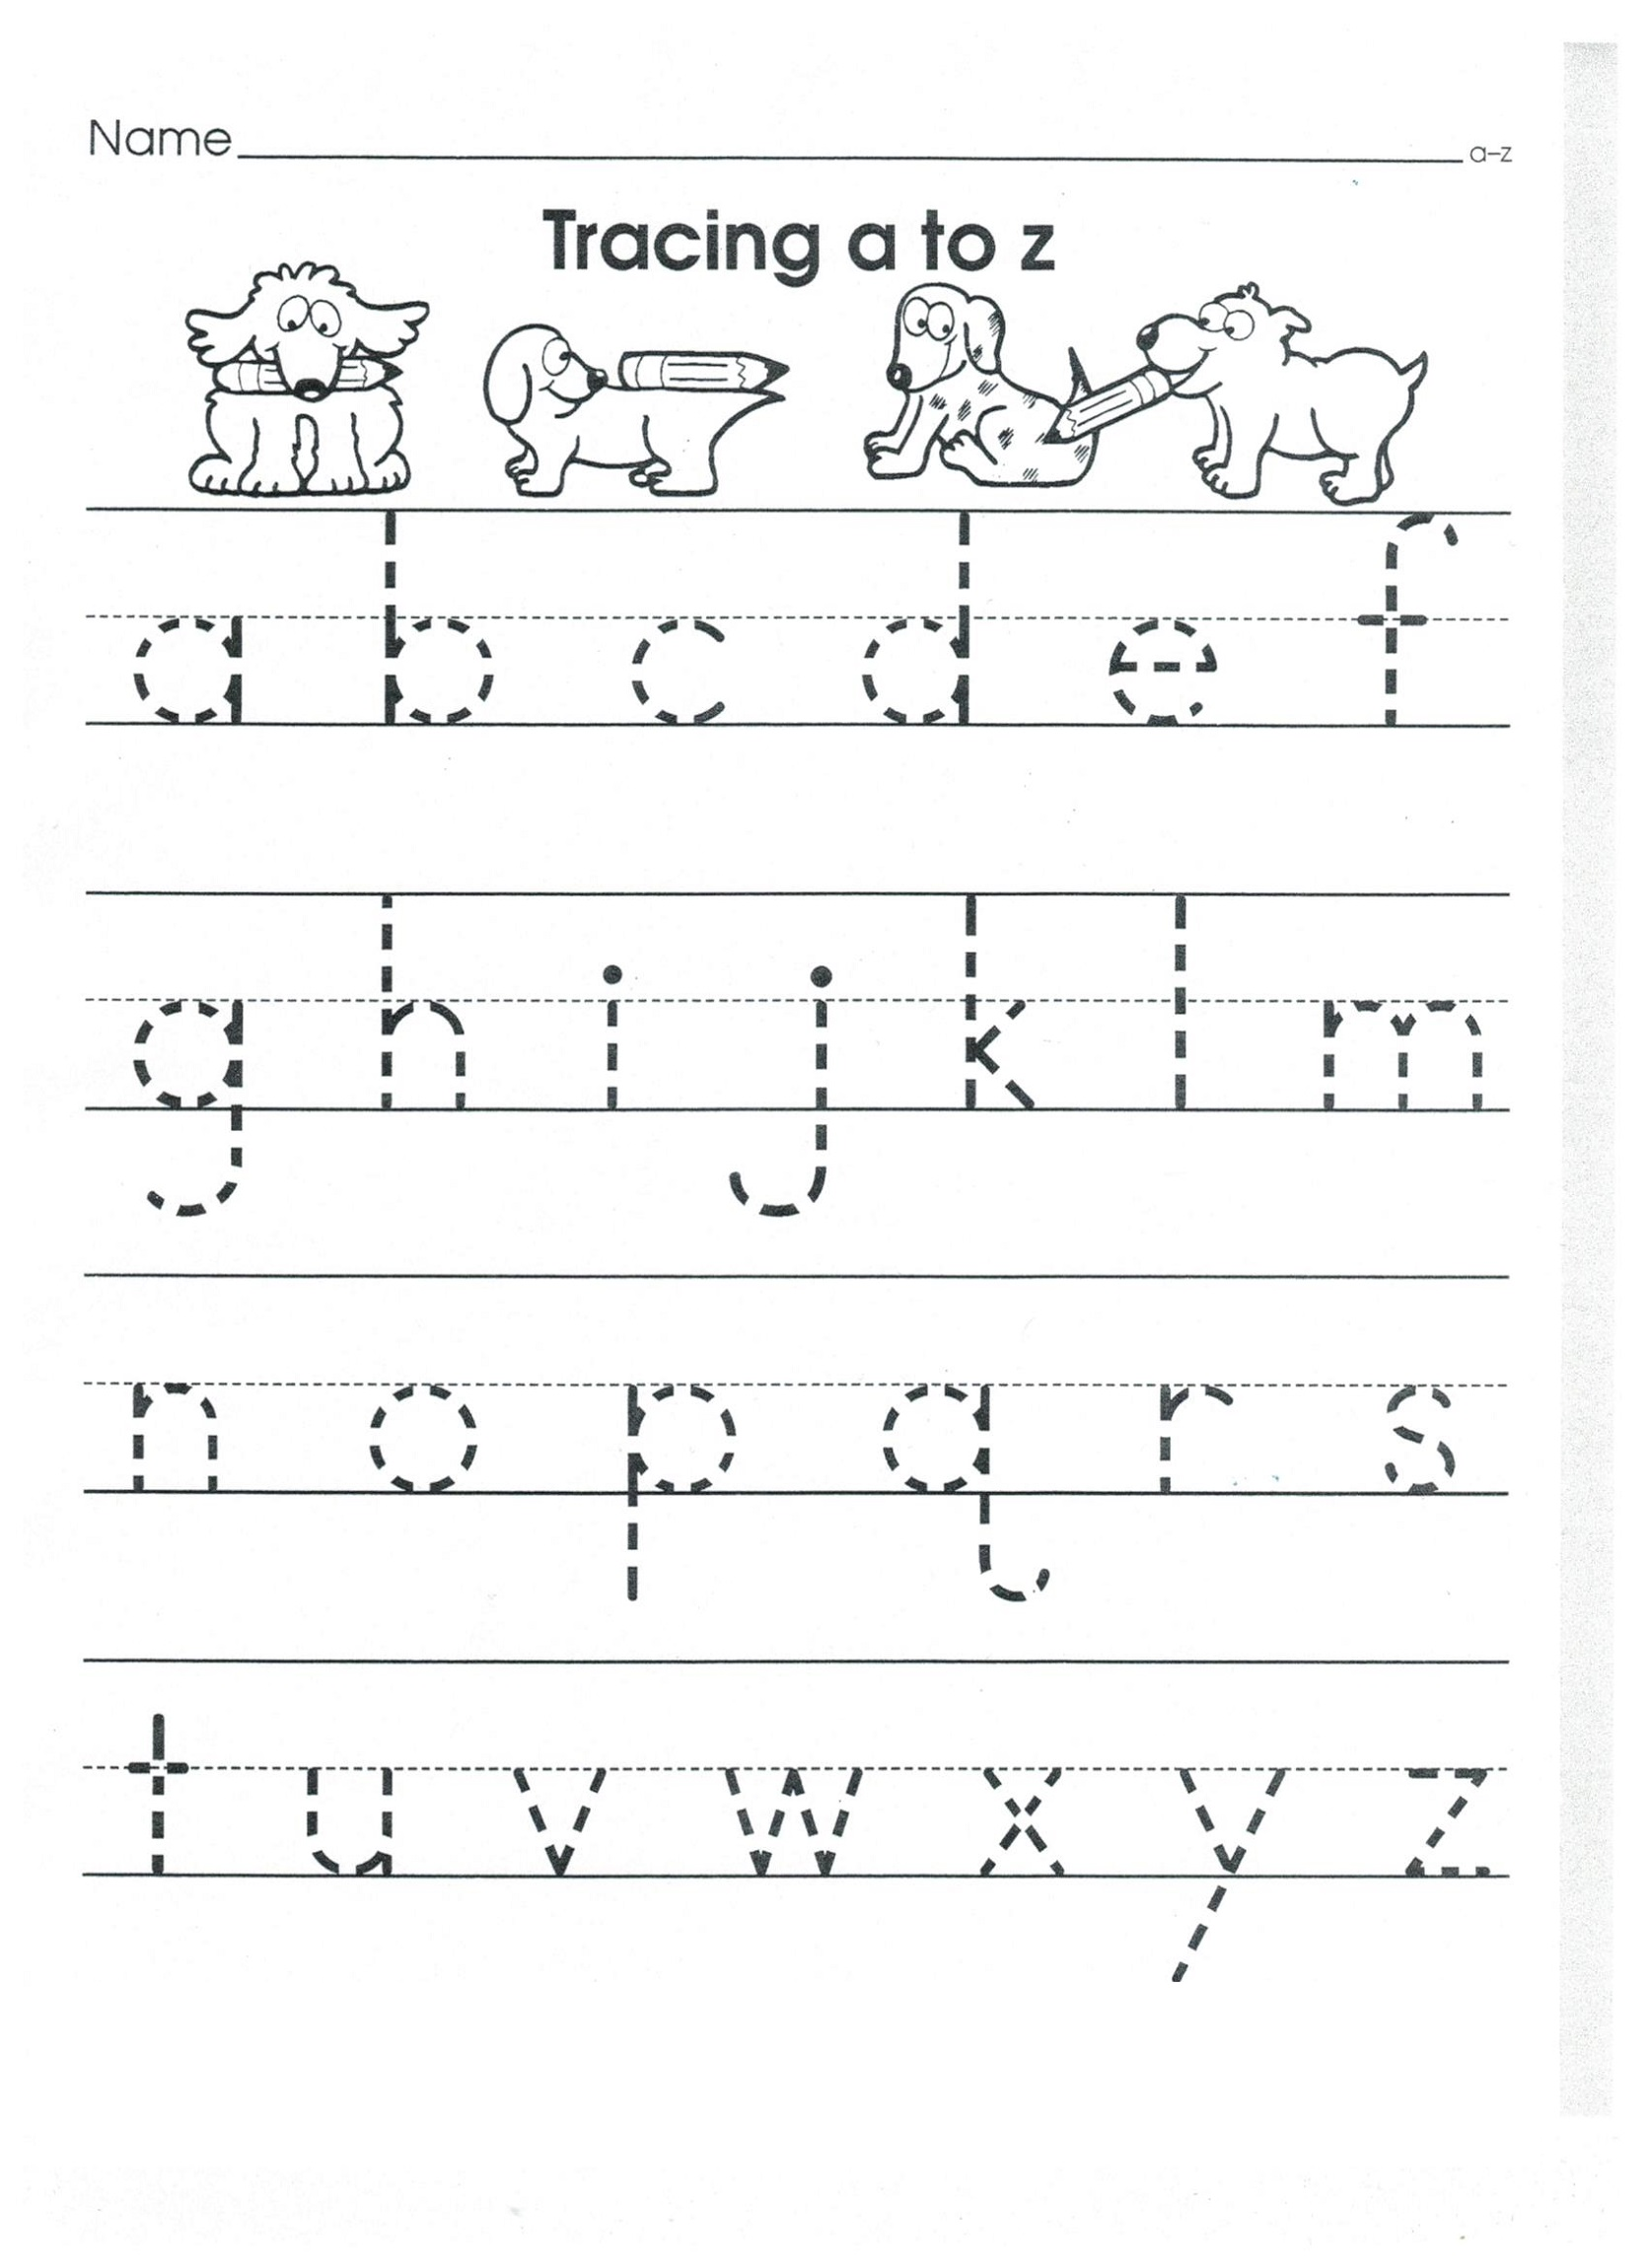 Practice Writing Lowercase Letter Worksheets | 101 Activity